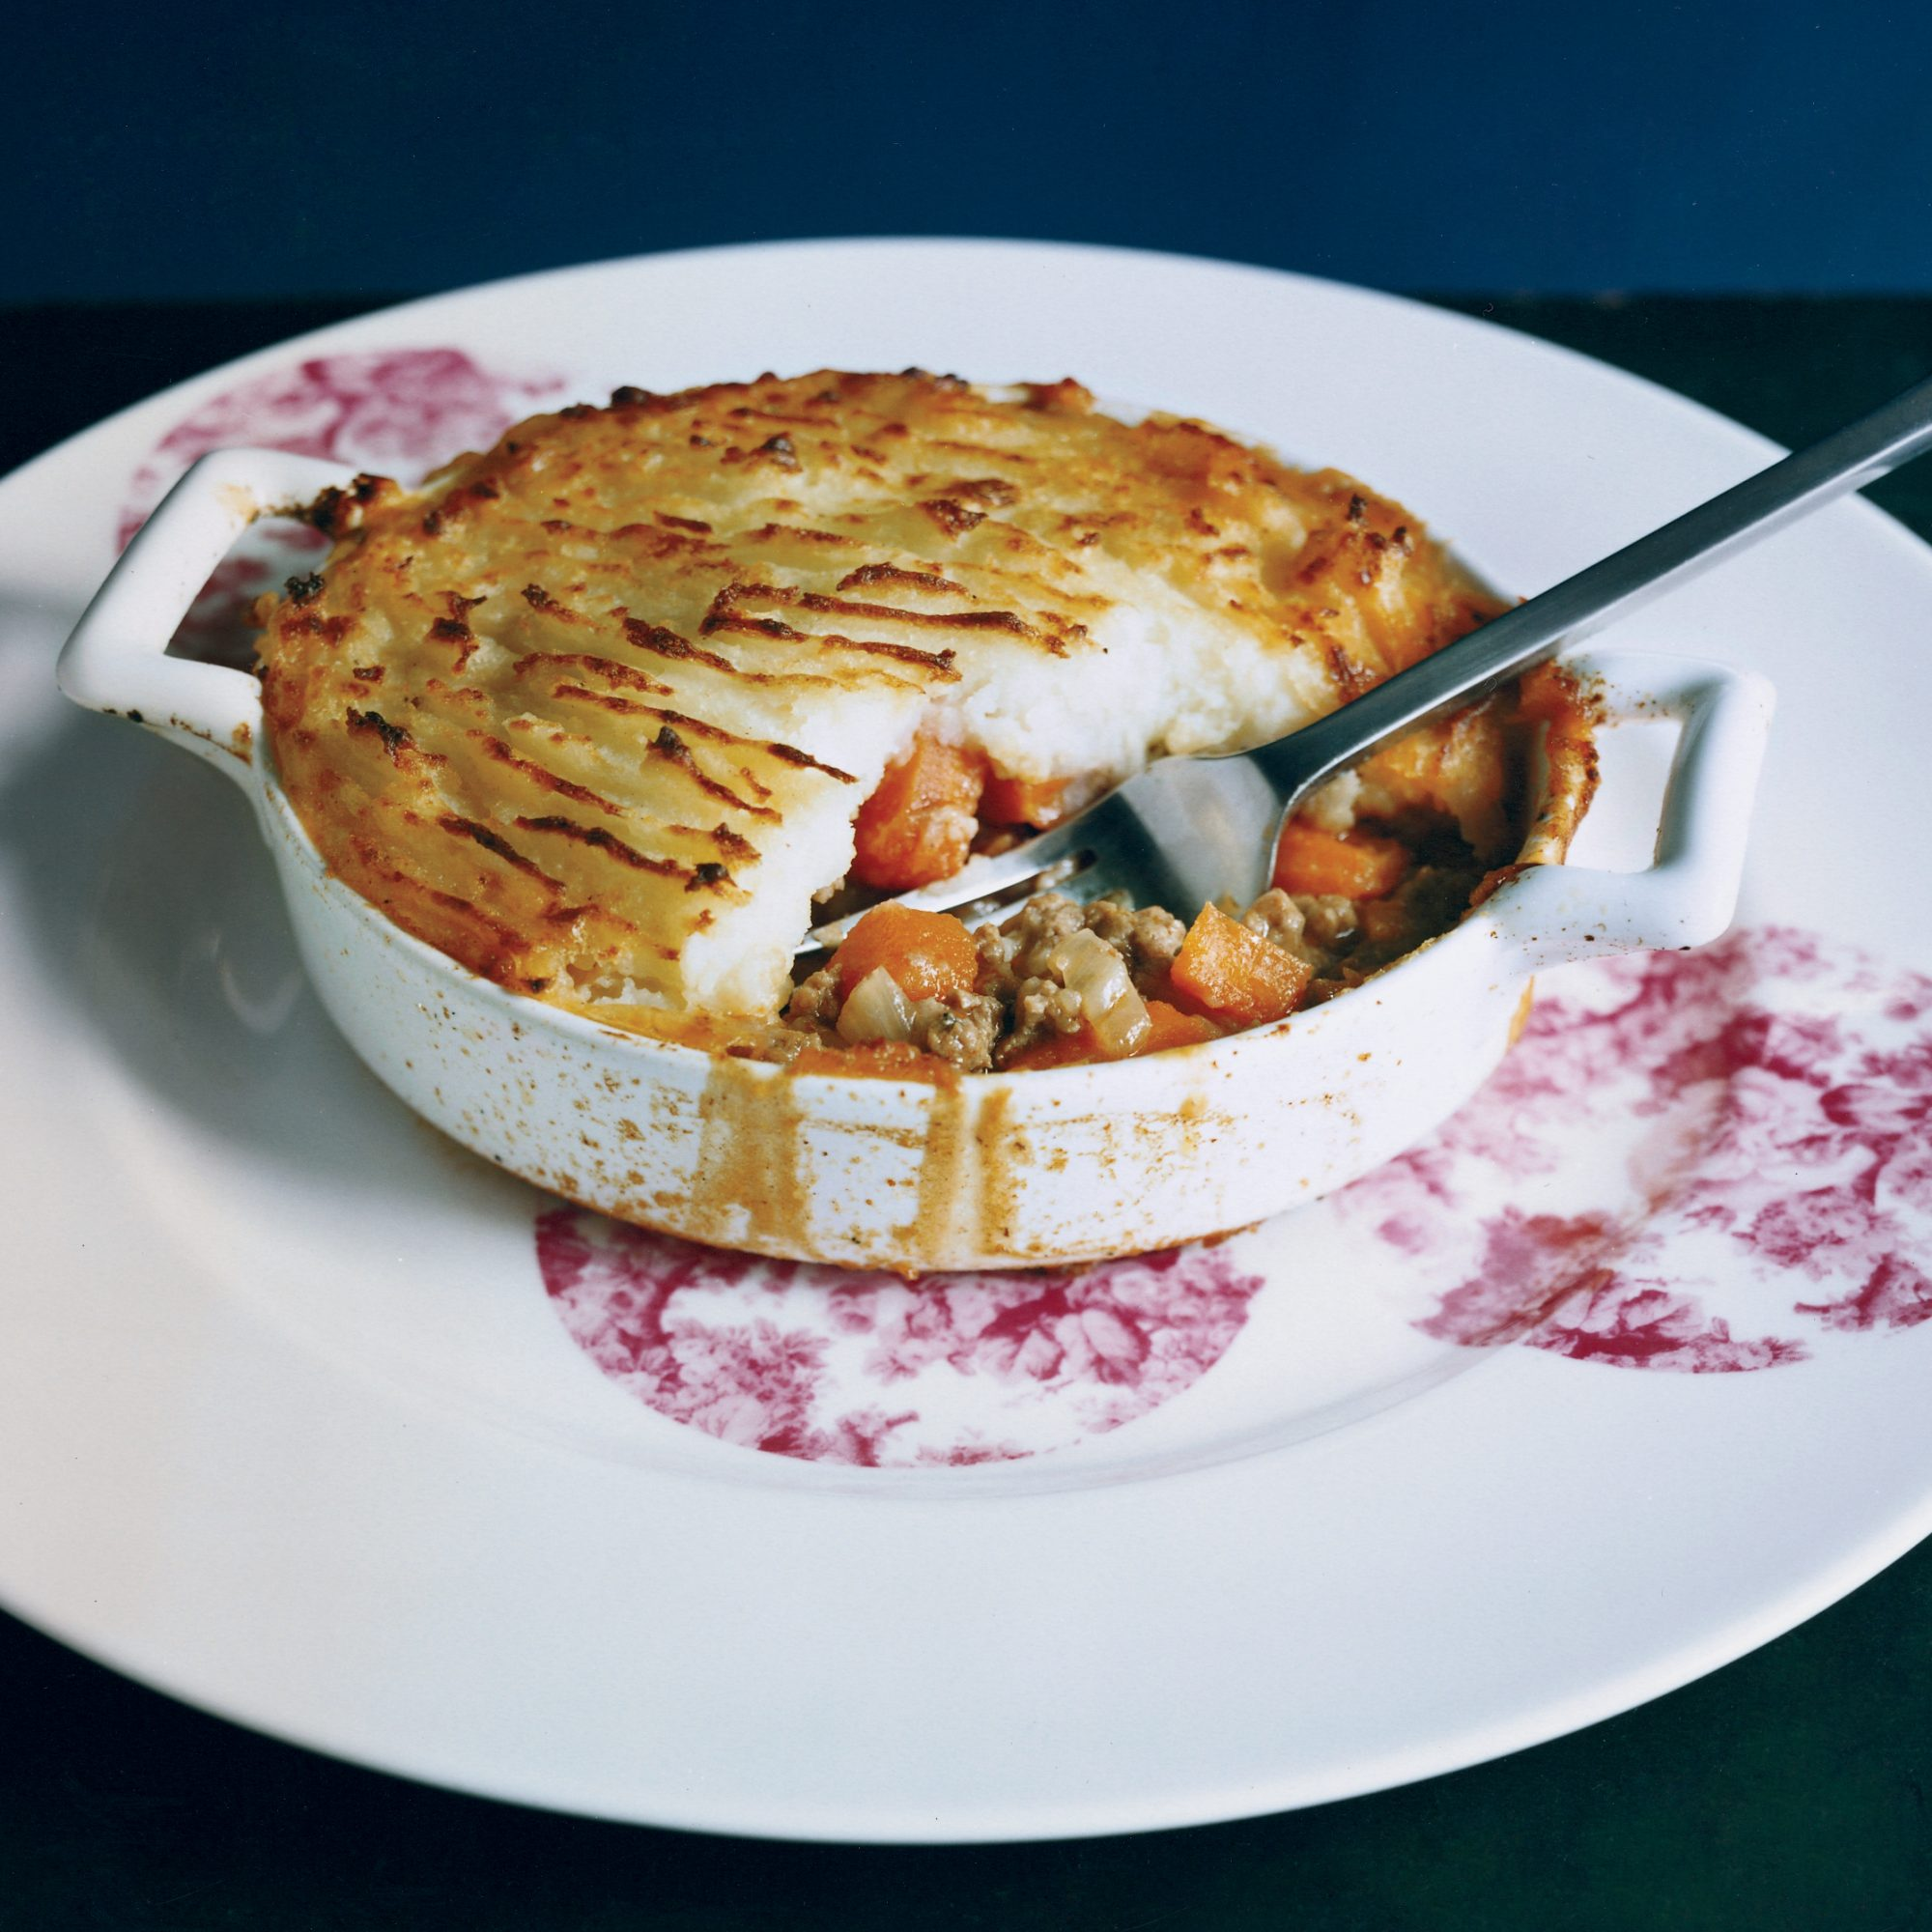 200901-r-shepherds-pie.jpg